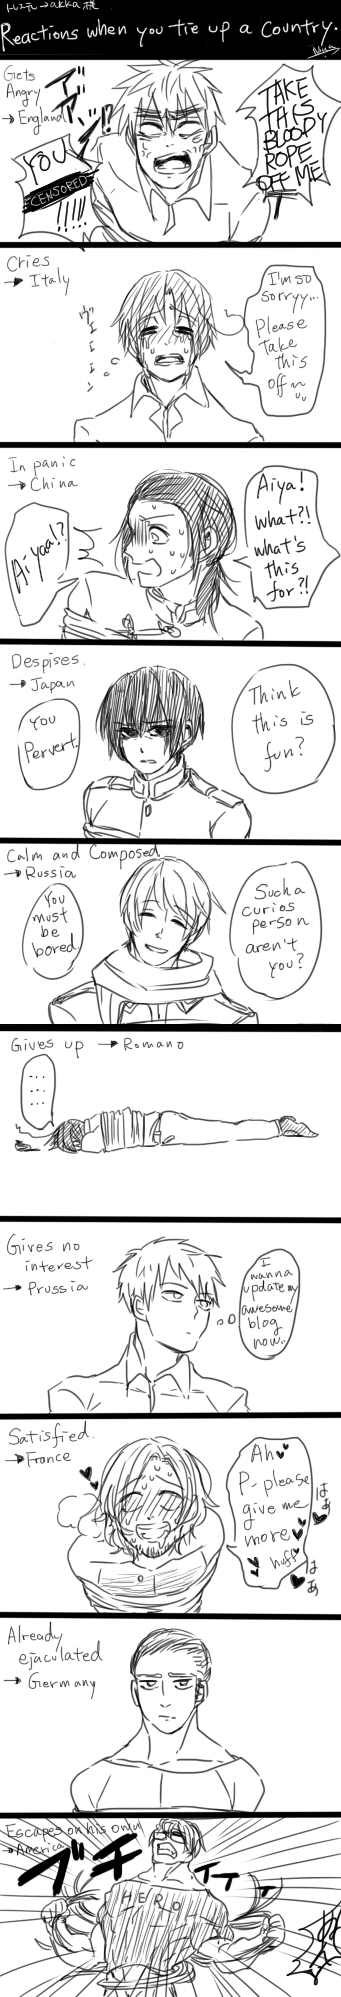 Reactions of the countries when you tie them up. by janikol